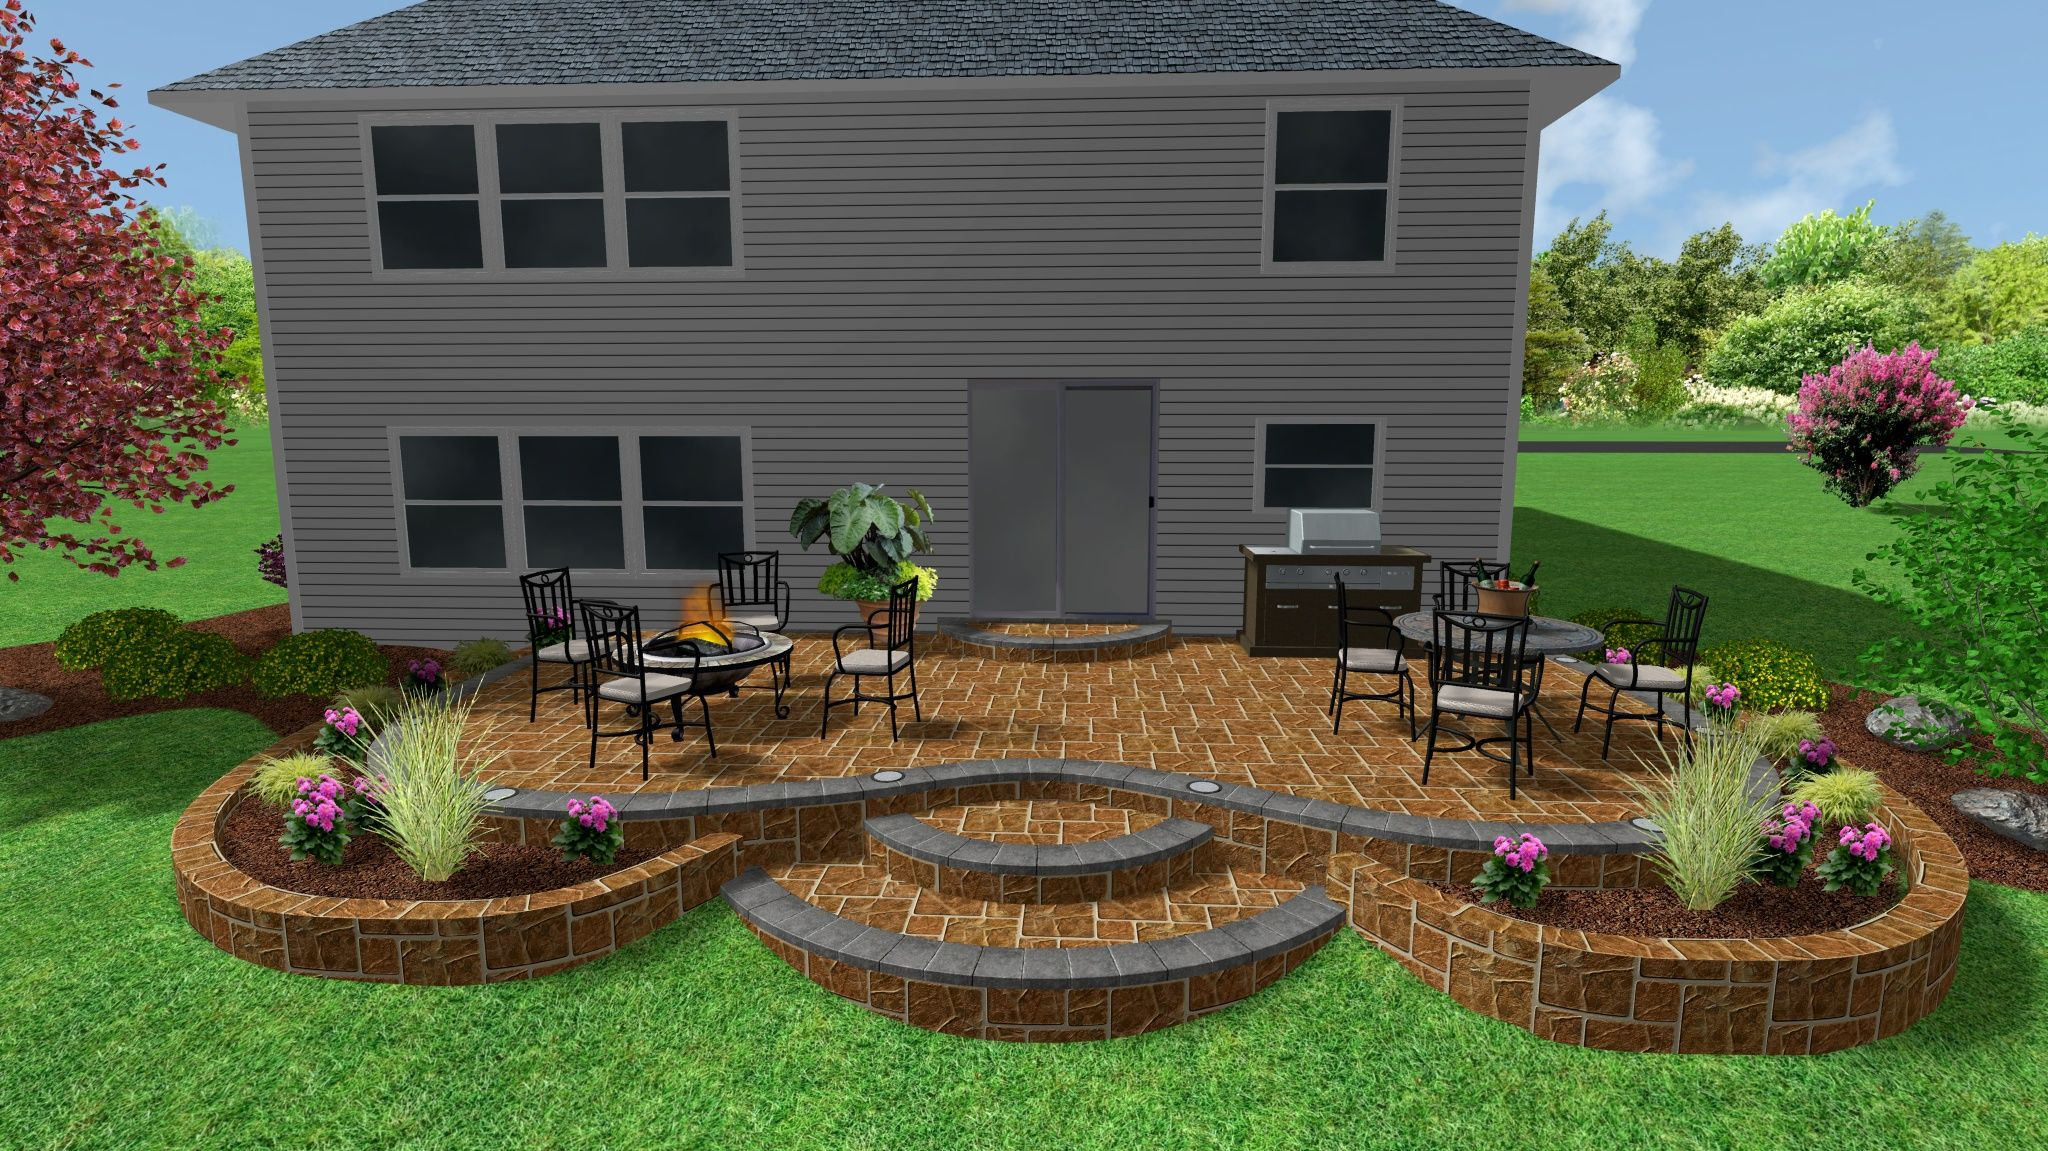 Raised Stamped Concrete Patio and Garden wall. | 3D ... on Square Concrete Patio Ideas  id=32538